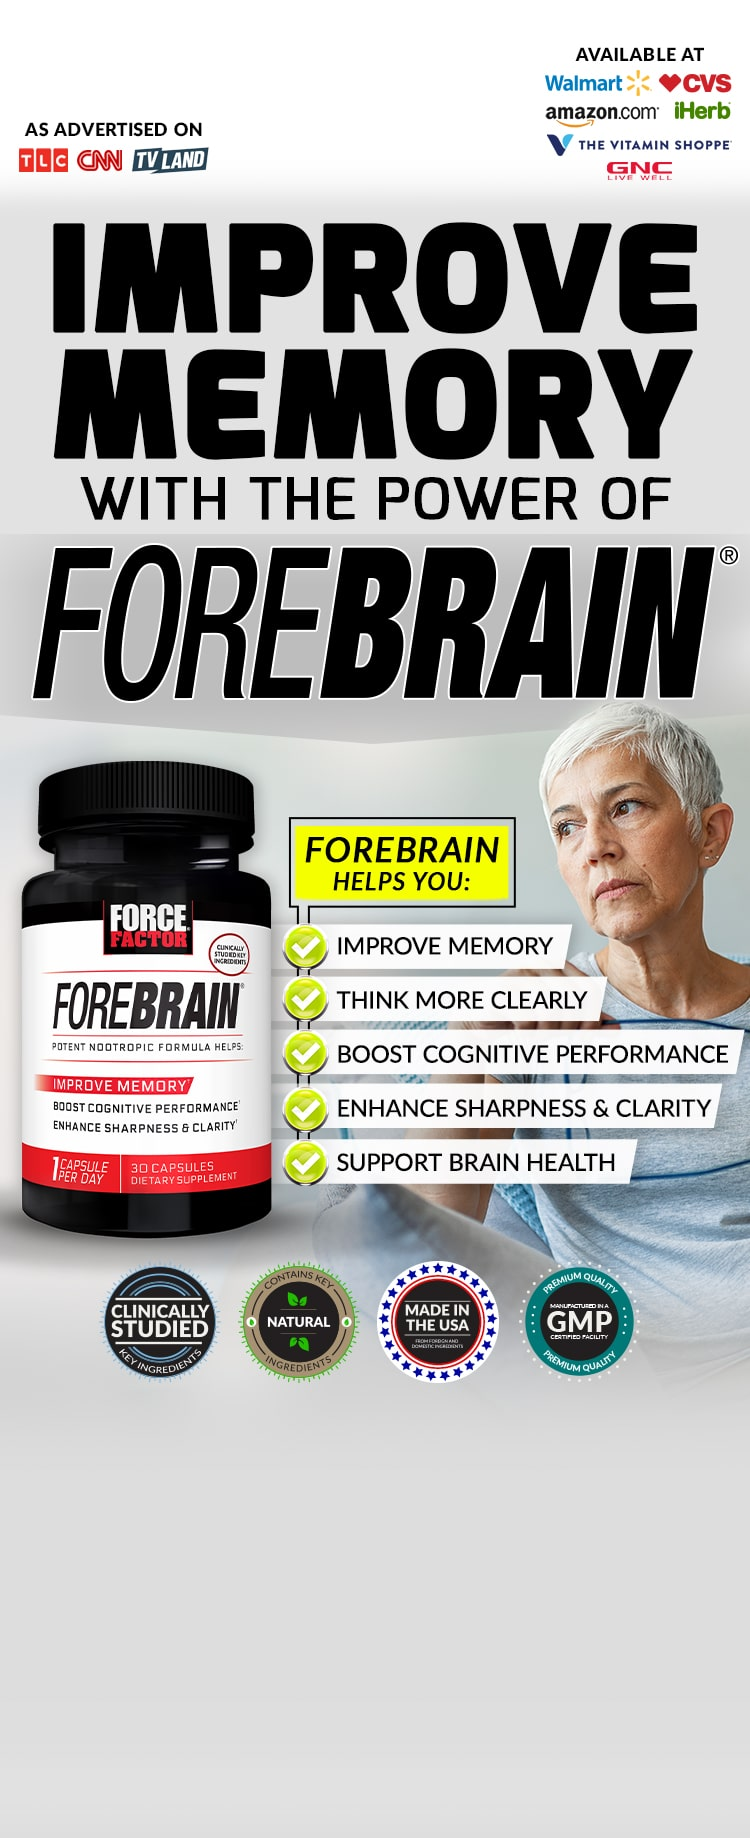 IMPROVE MEMORY WITH THE POWER OF FOREBRAIN® FOREBRAIN HELPS YOU: IMPROVE MEMORY, THINK MORE CLEARLY, BOOST COGNITIVE PERFORMANCE, ENHANCE SHARPNESS & CLARITY, SUPPORT BRAIN HEALTH